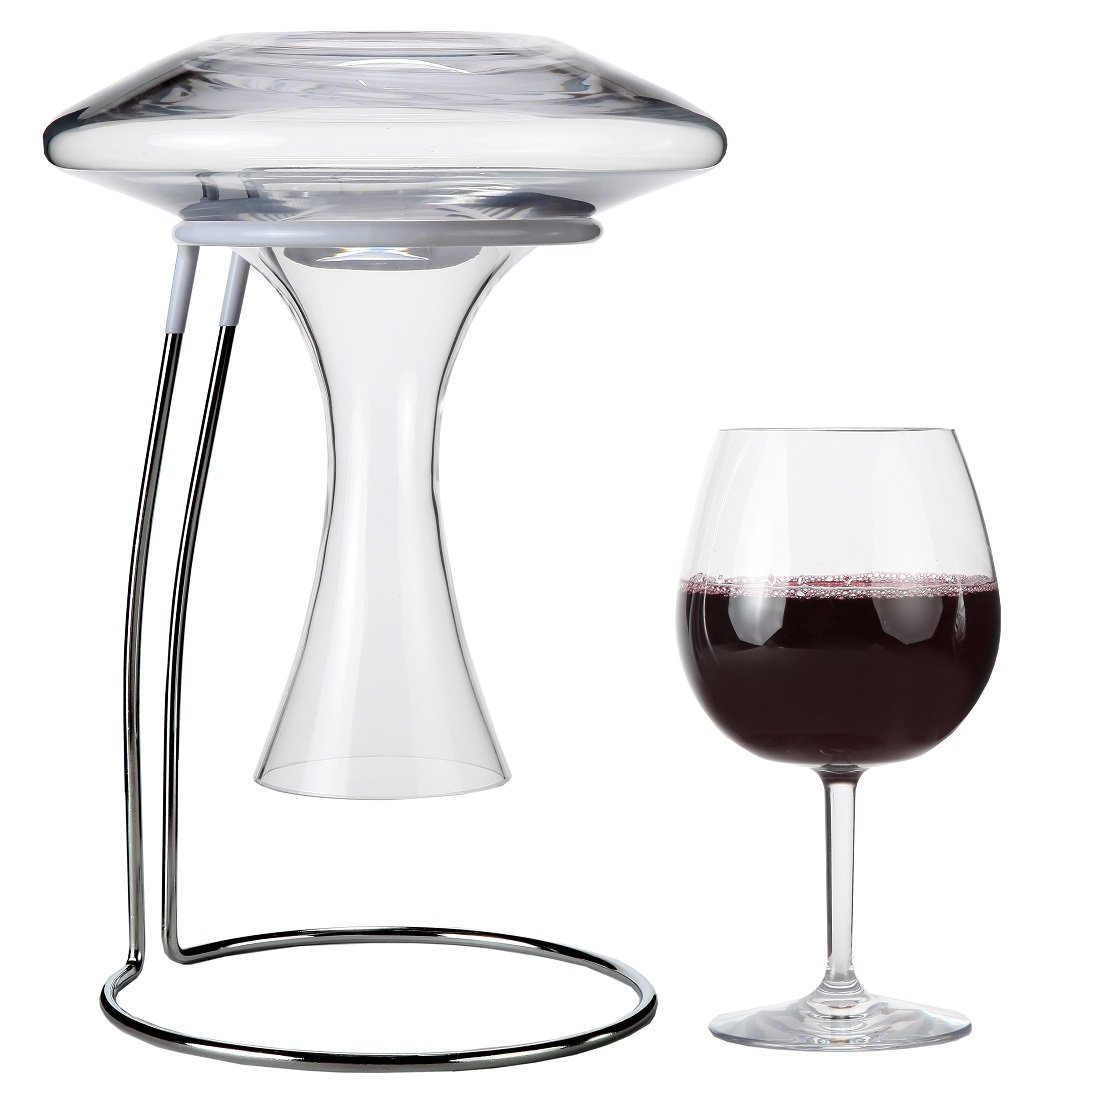 Lily's Home Wine Decanter Drying Stand with Rubber Coated Top to Prevent Scratches, Includes Cleaning Brush, For Standard Large Bottomed Wine Decanters, Decanter and Wine Glass NOT Included by Lily's Home